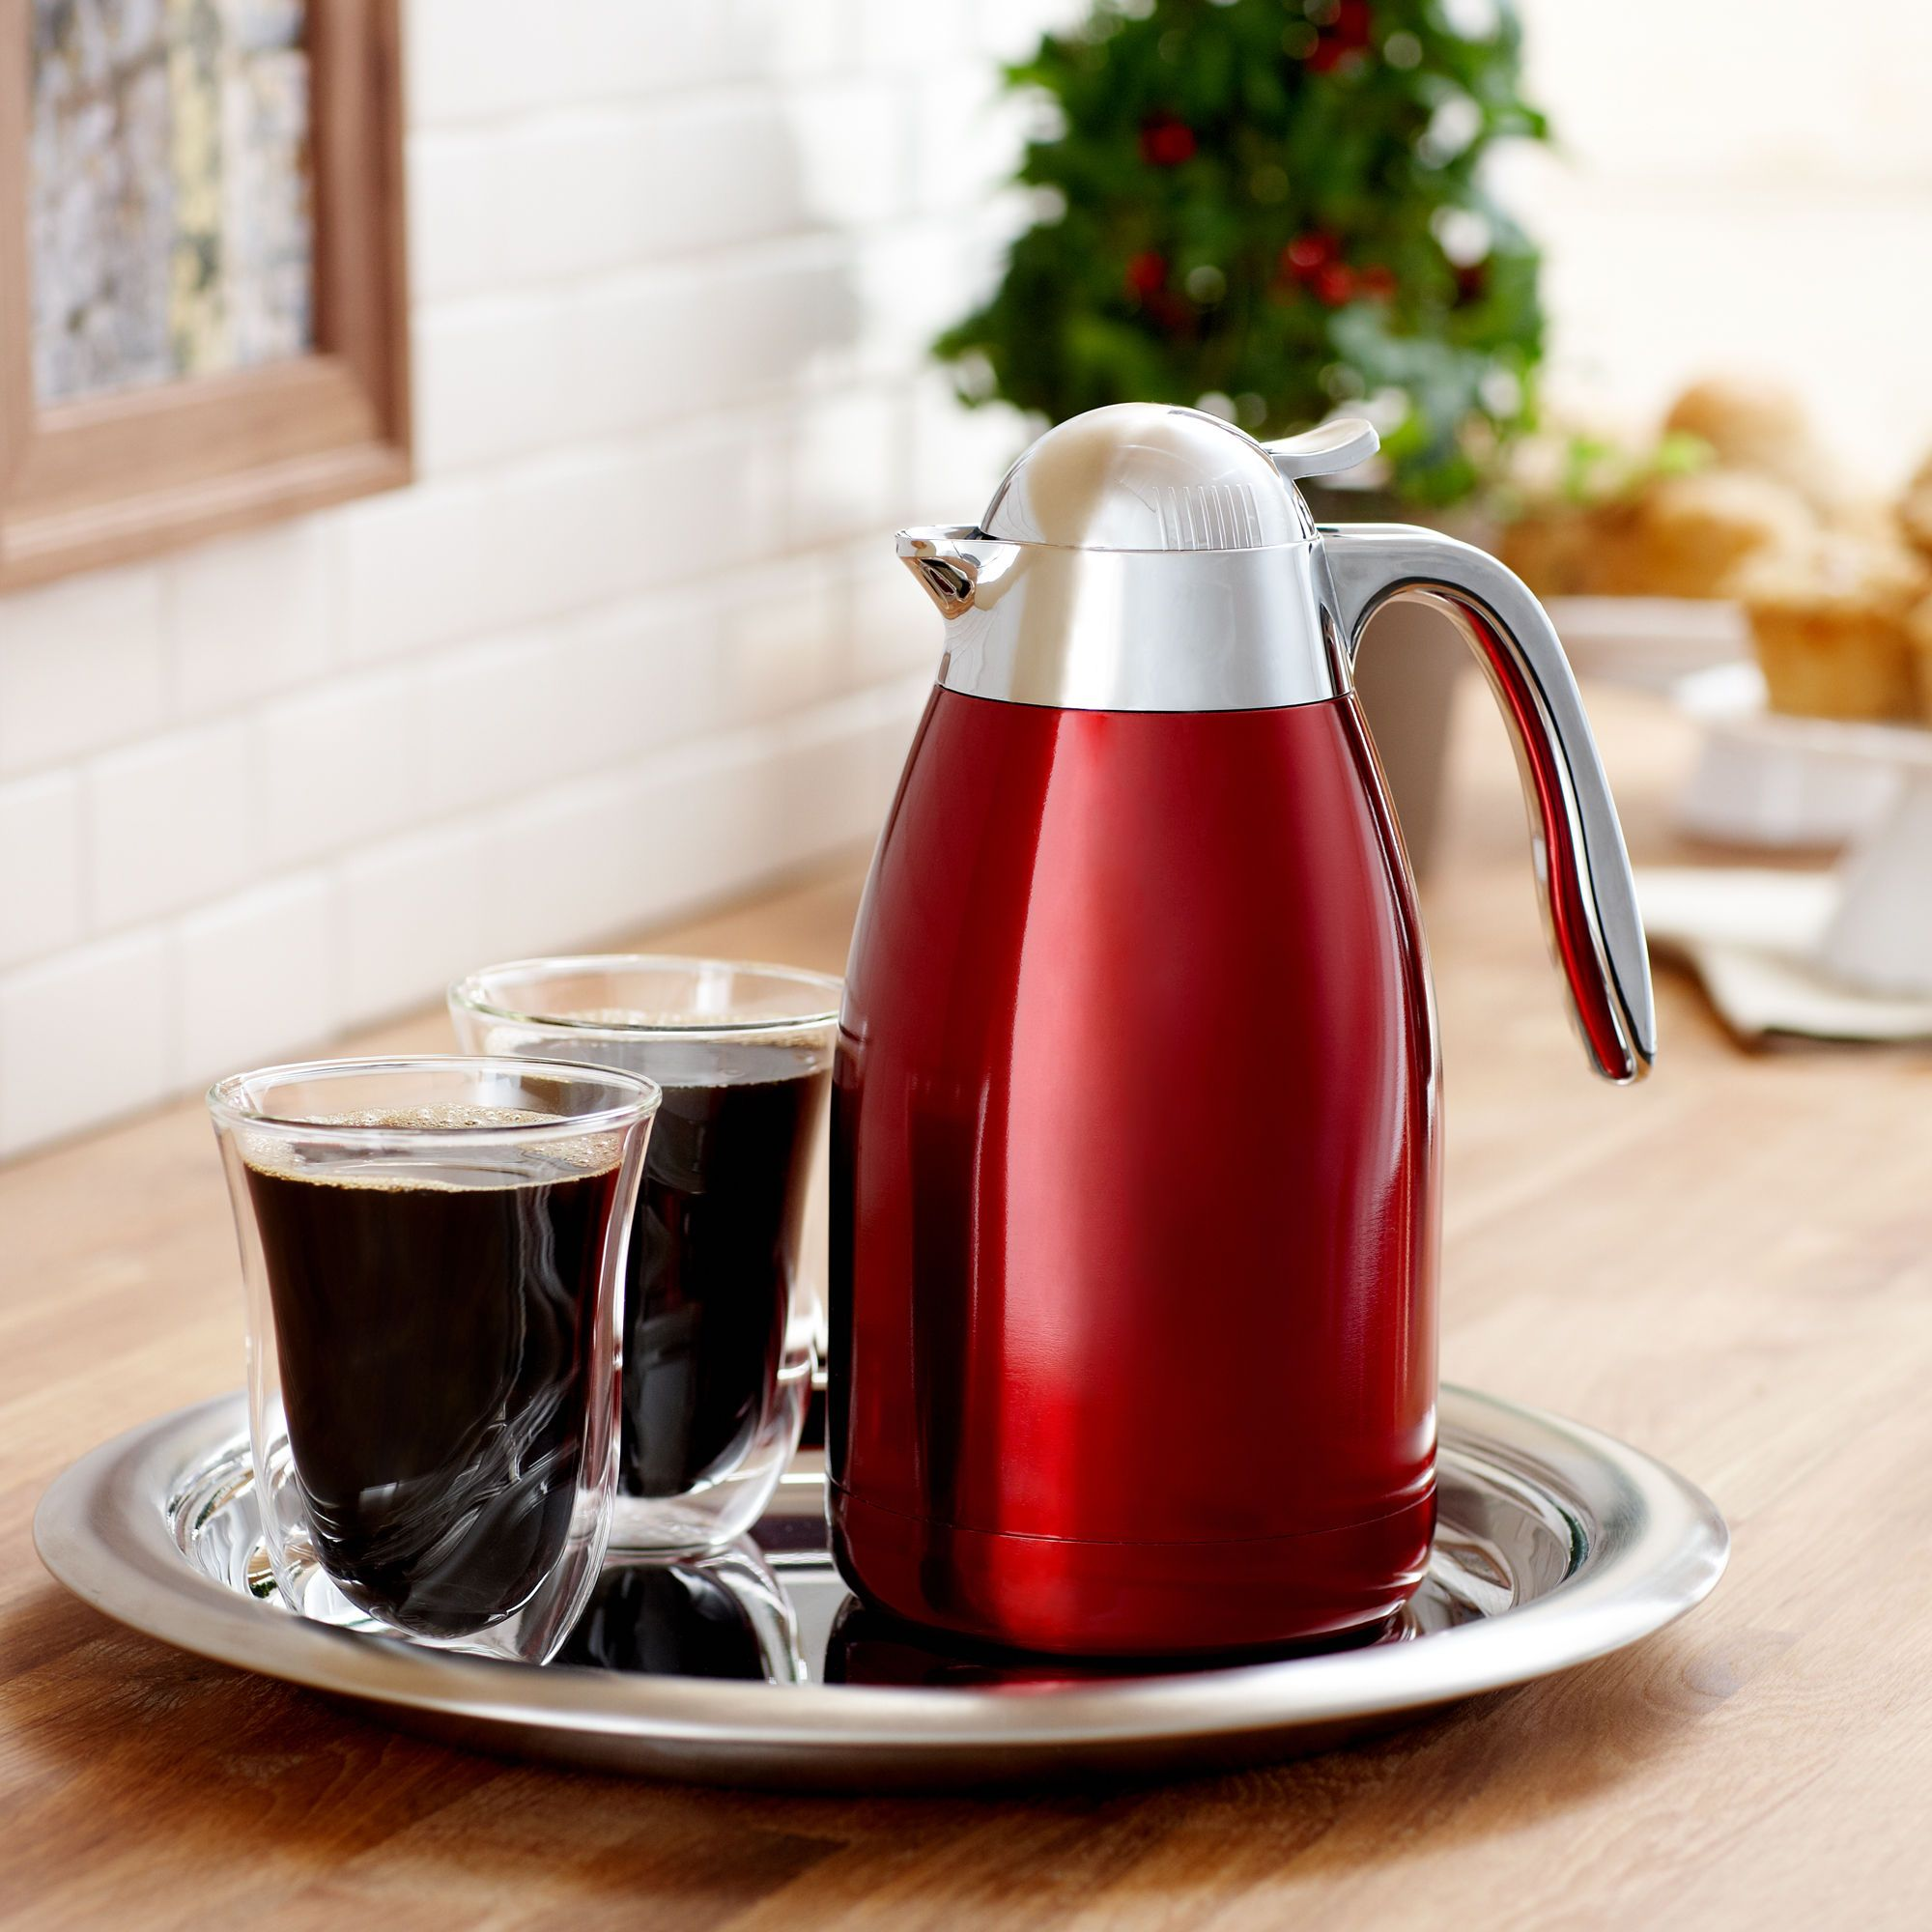 Starbucks® Stainless Steel Red Carafe Starbucks store